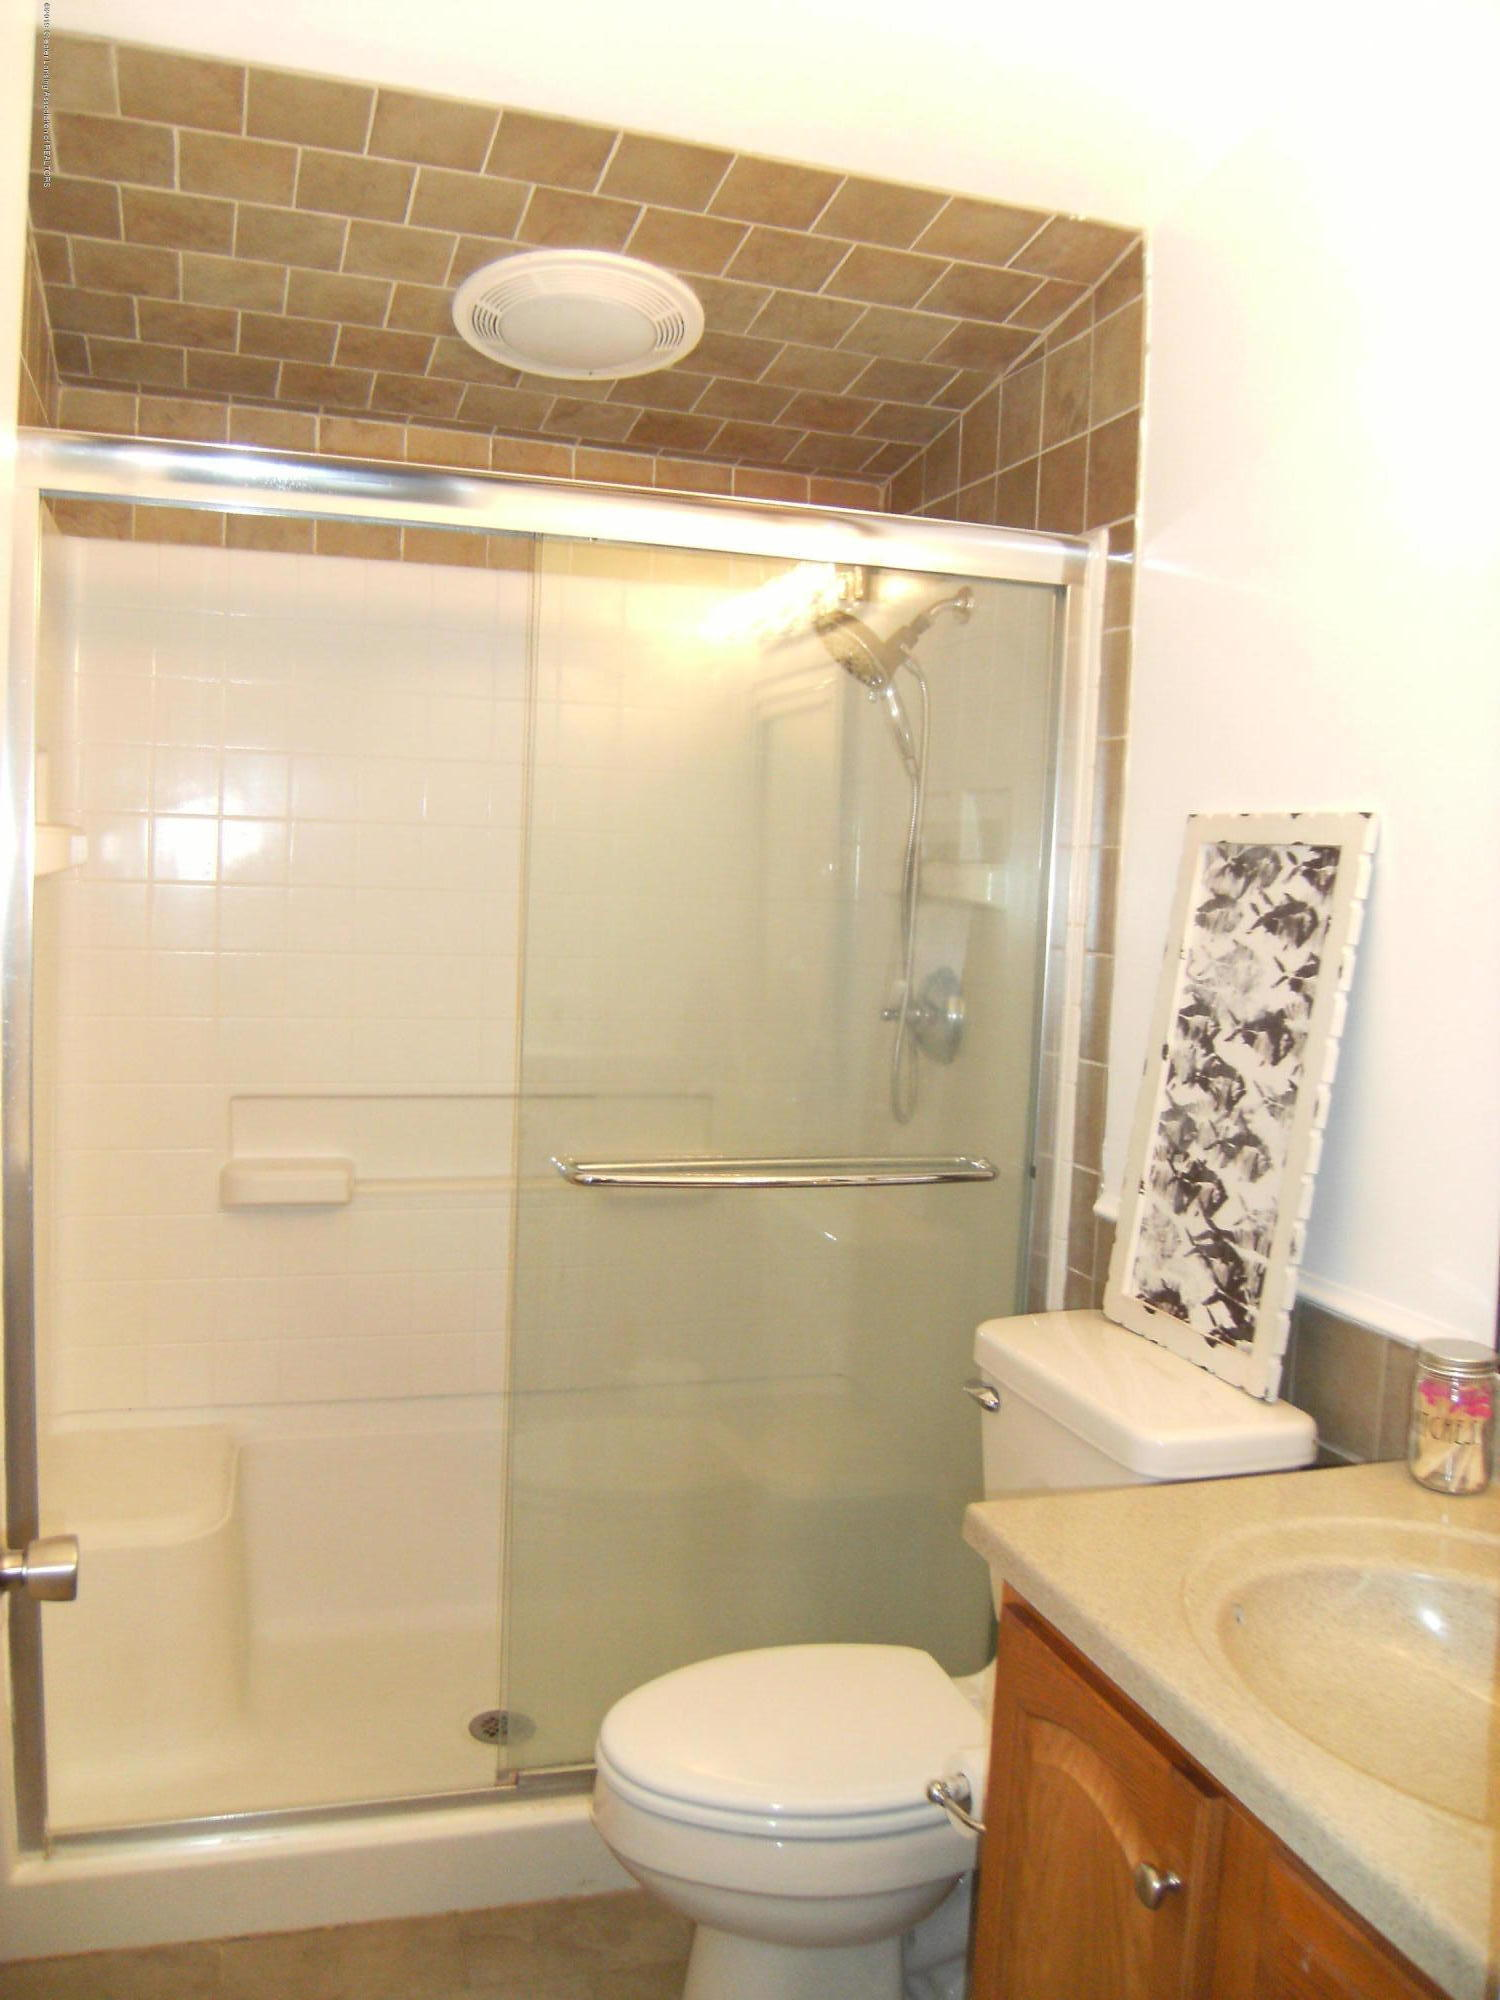 1315 N Foster Ave - Bathroom - 12